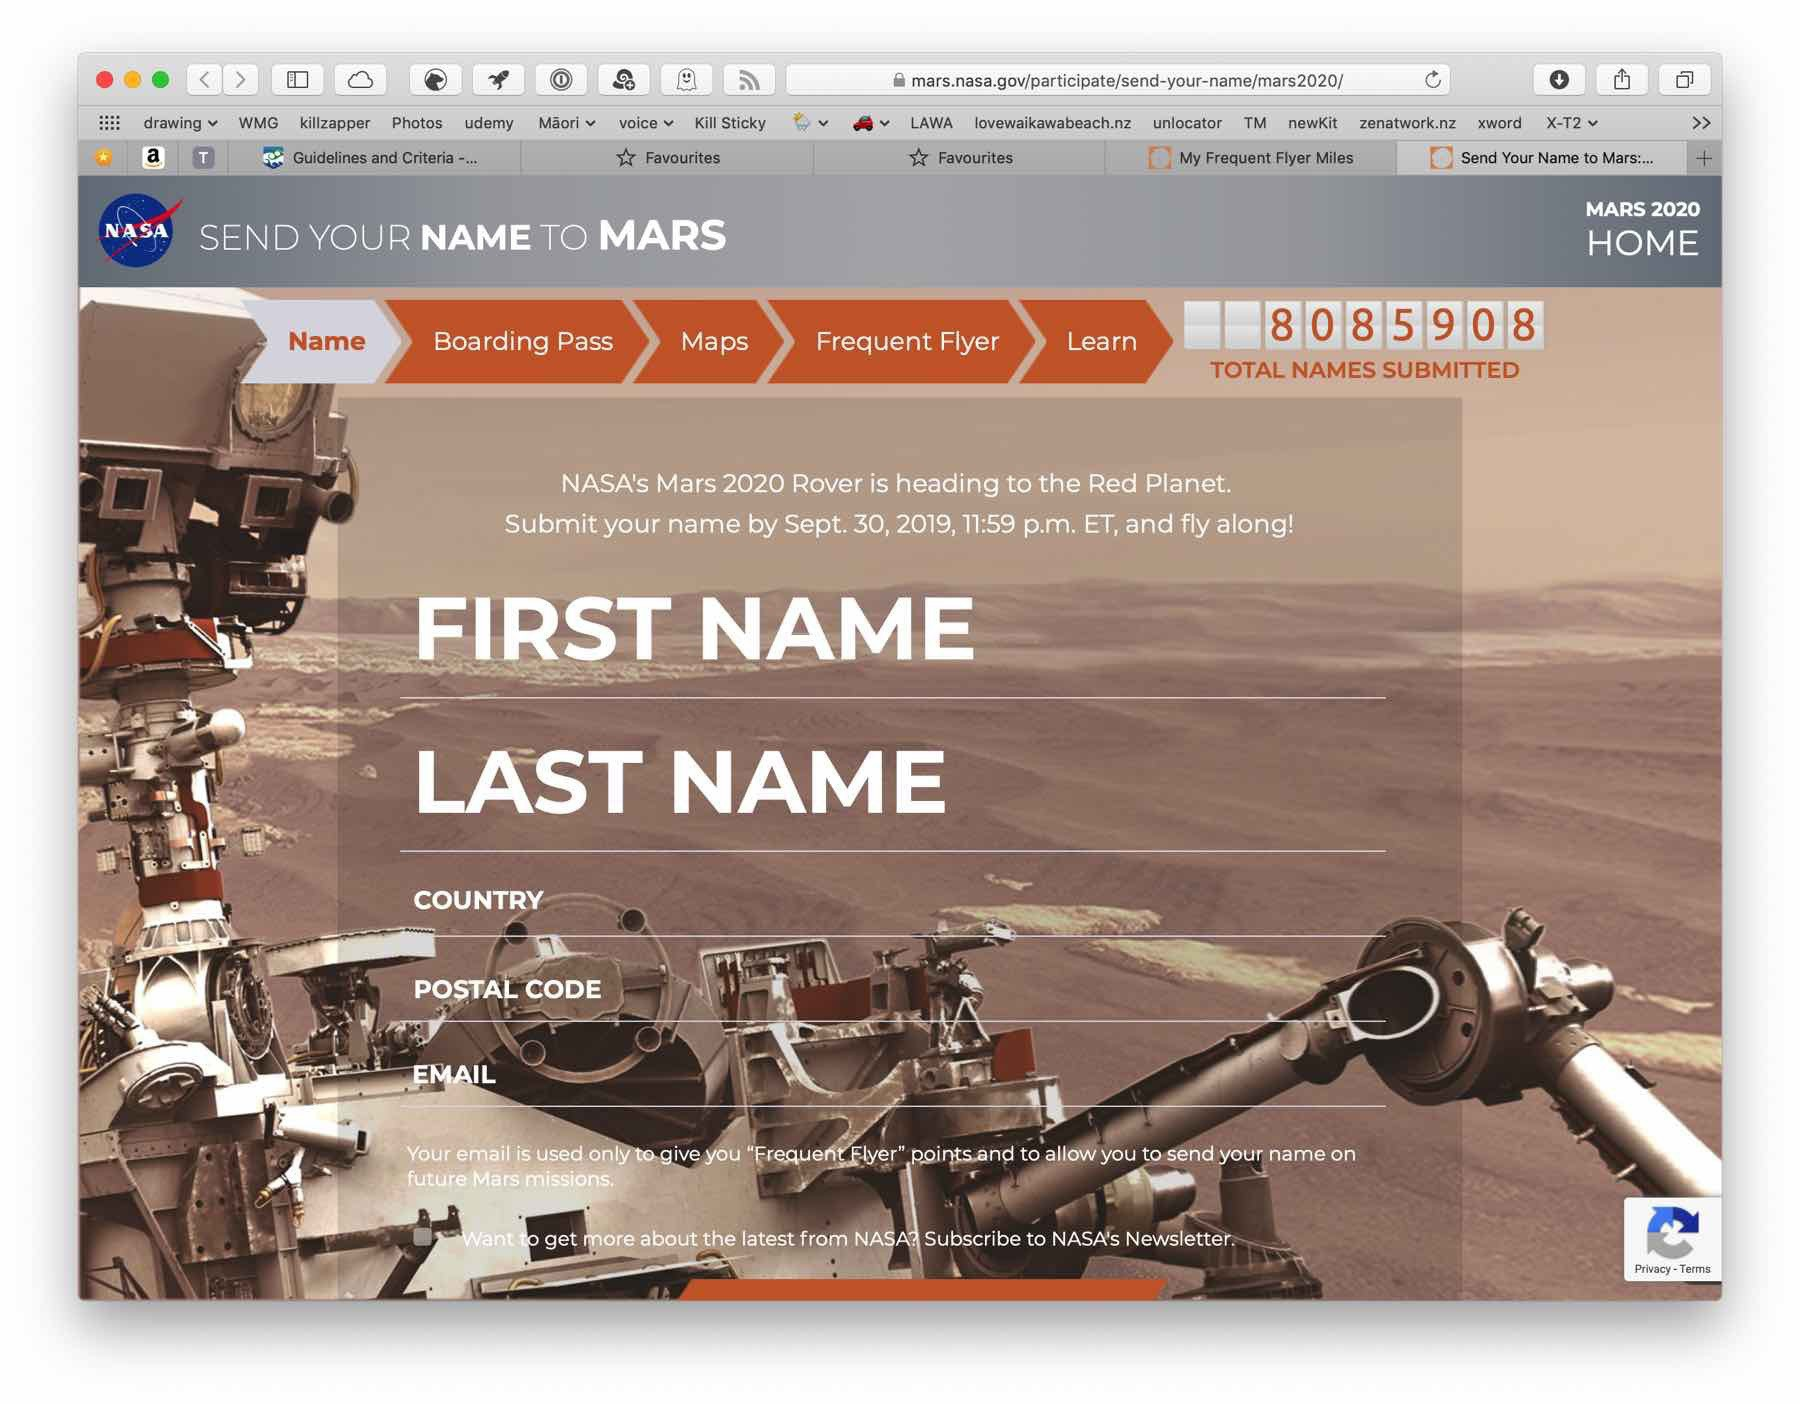 Screenshot: send your name to Mars page.